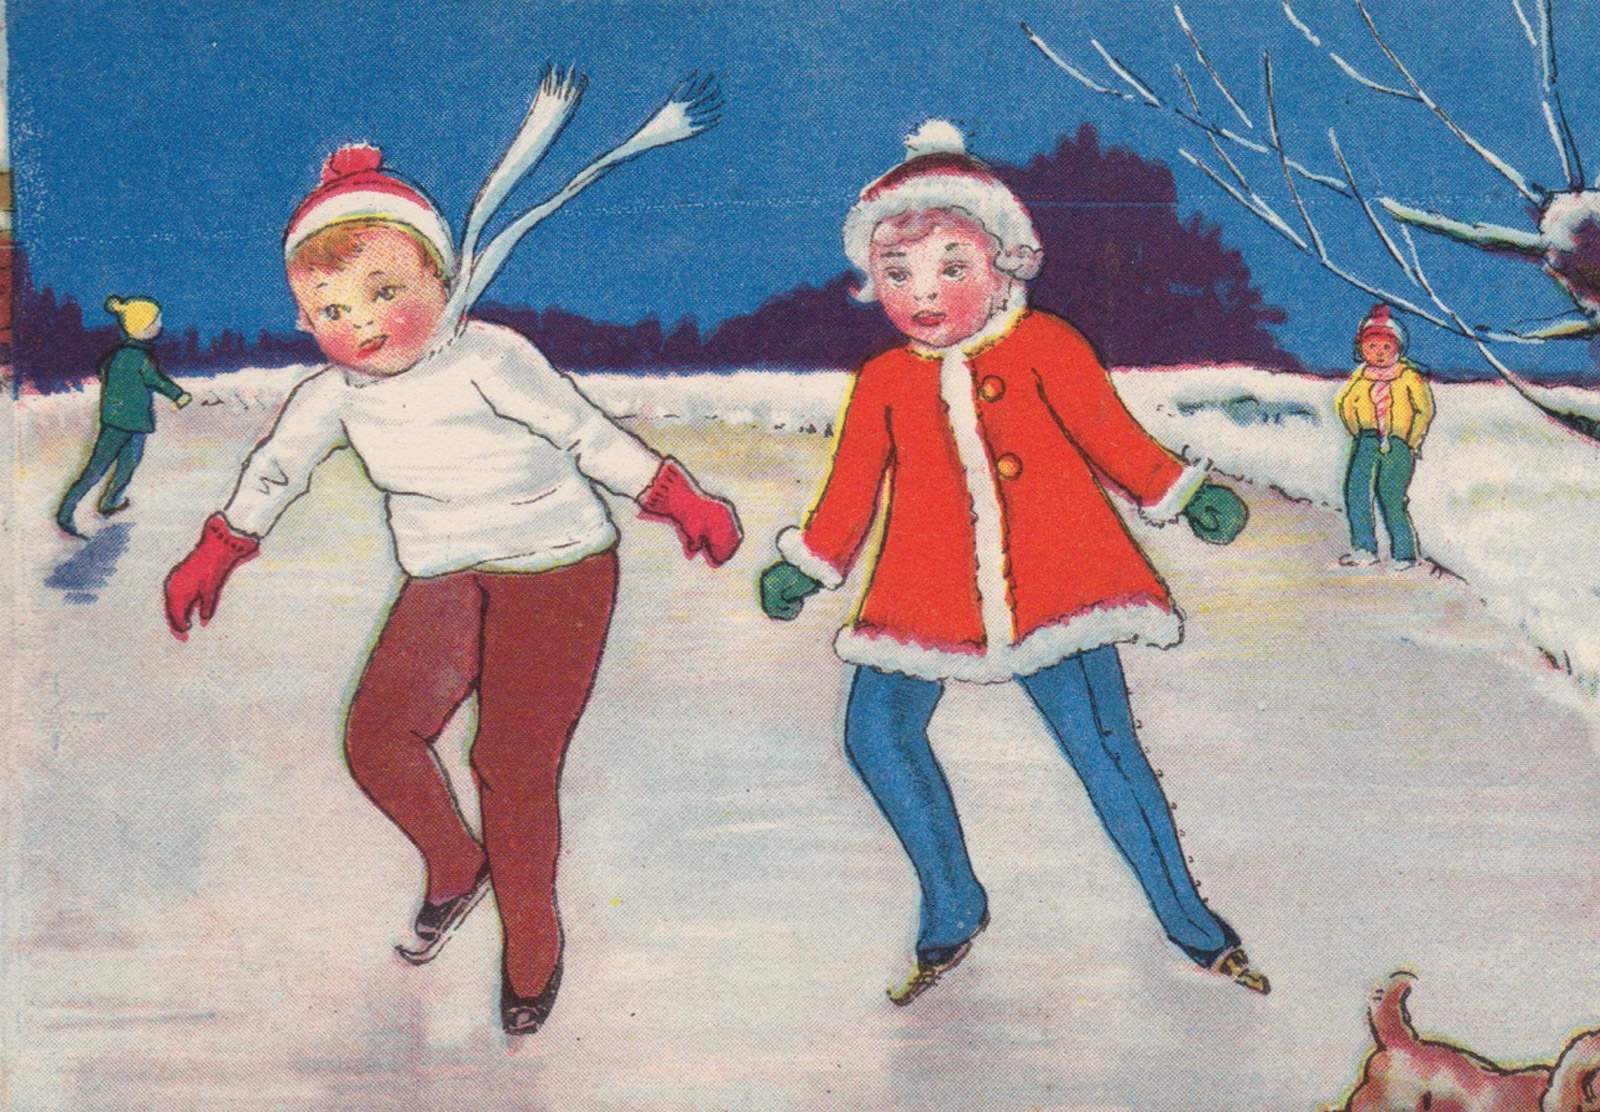 Old ice skating illustration